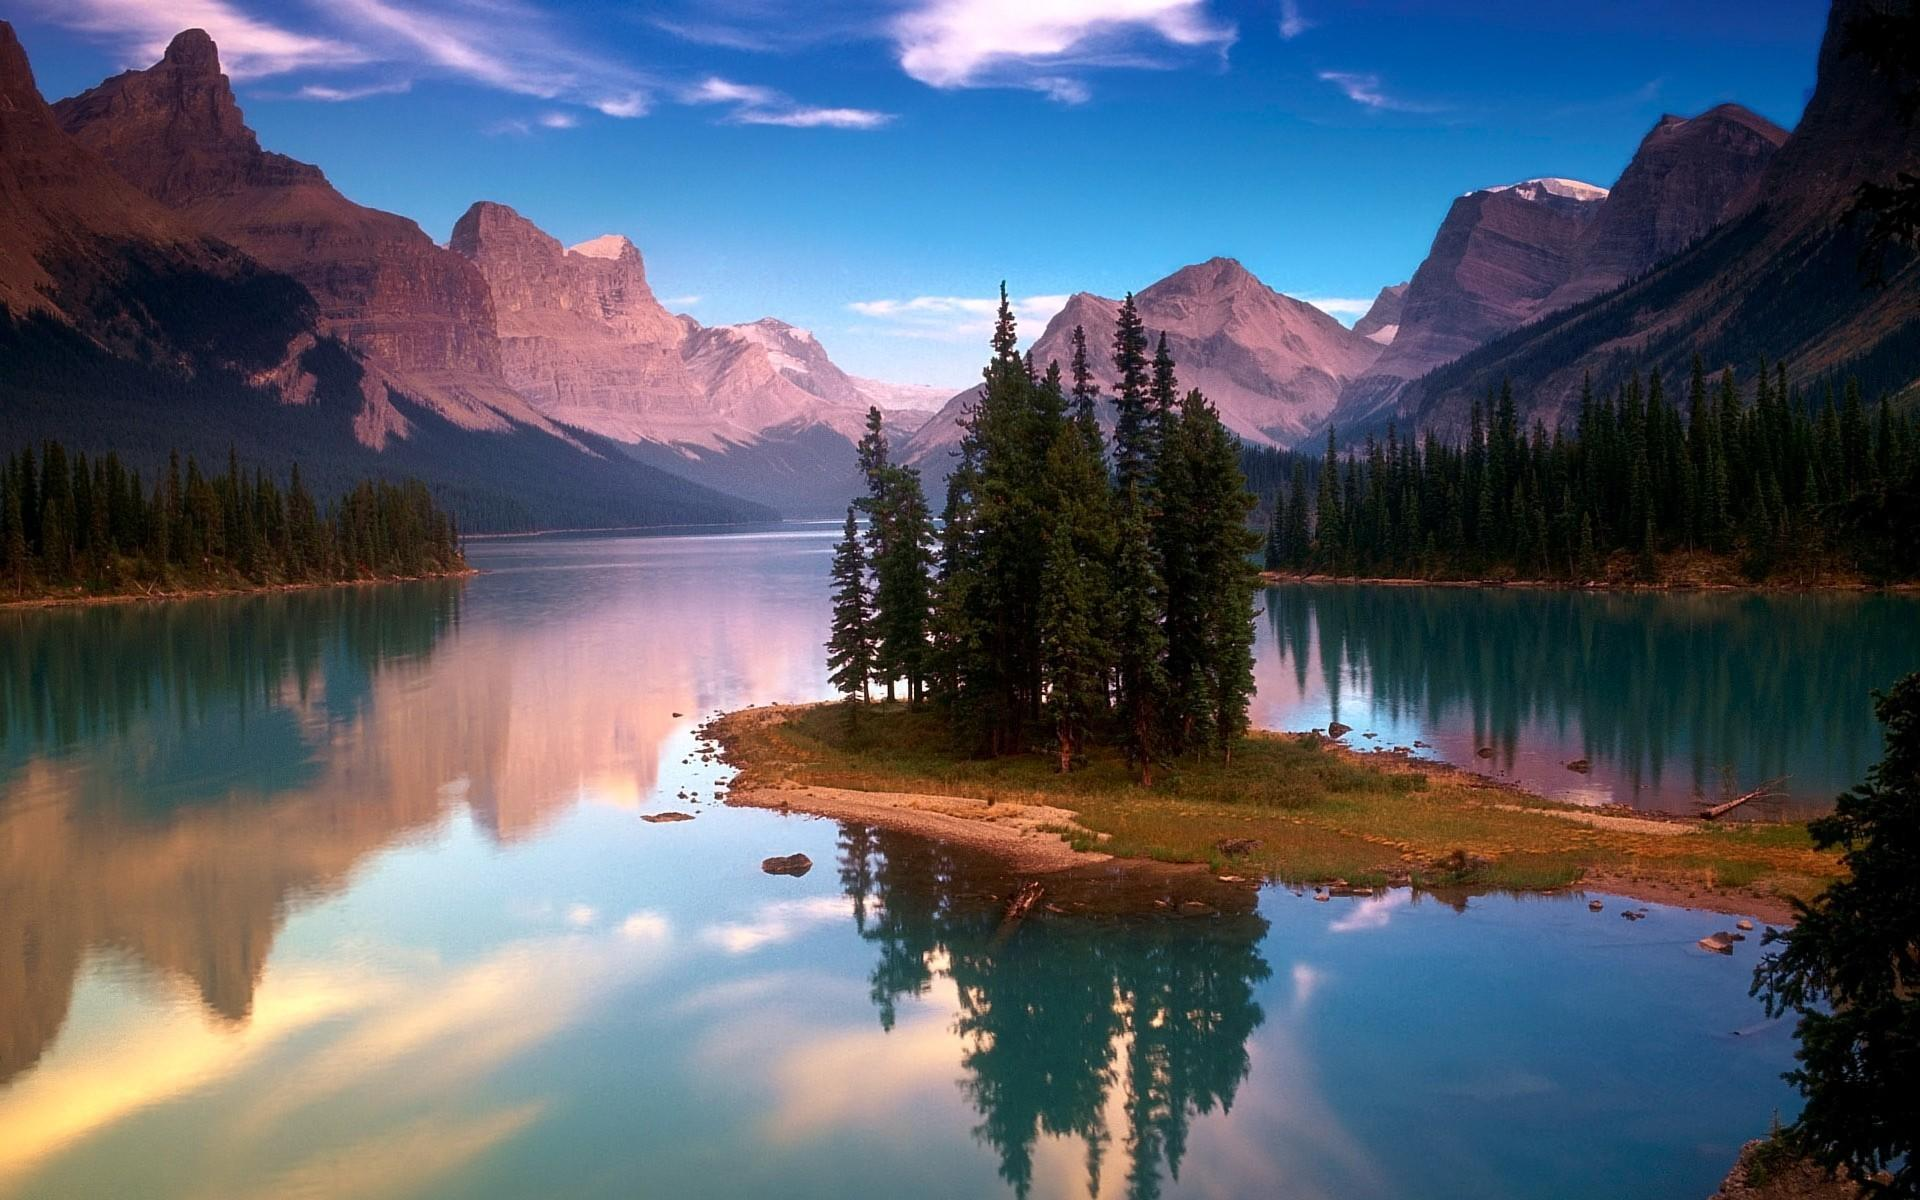 Stunning Landscapes Cute Wallpapers at&t internet services